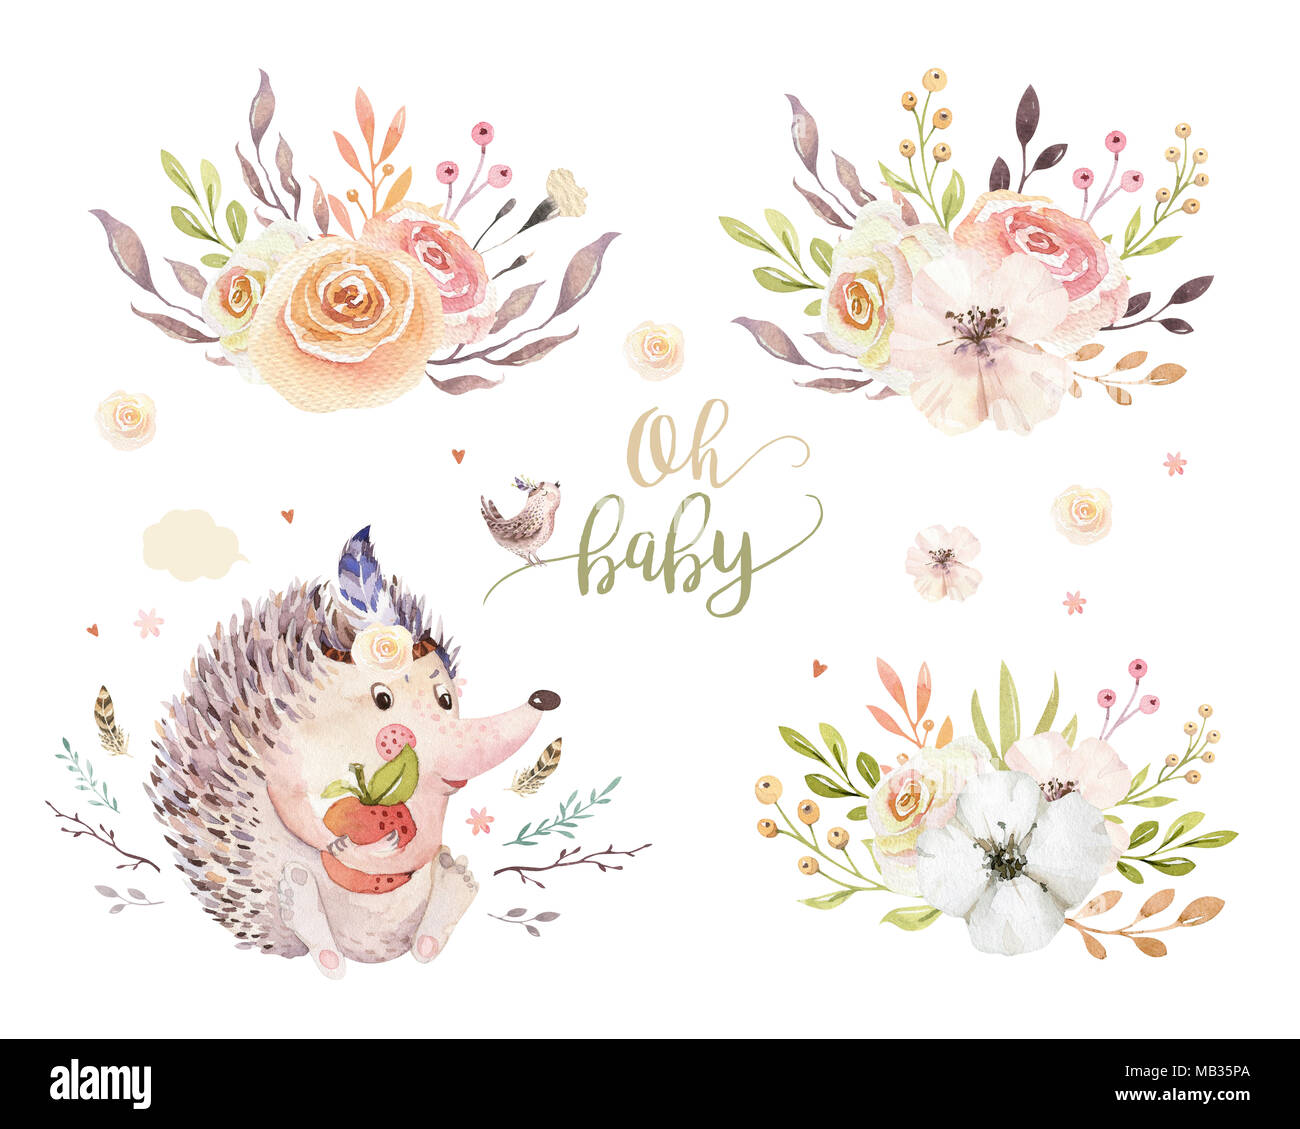 Cute watercolor bohemian baby hedgehog animal poster for nursary with bouquets, alphabet woodland isolated forest illustration. Baby shower animals in - Stock Image